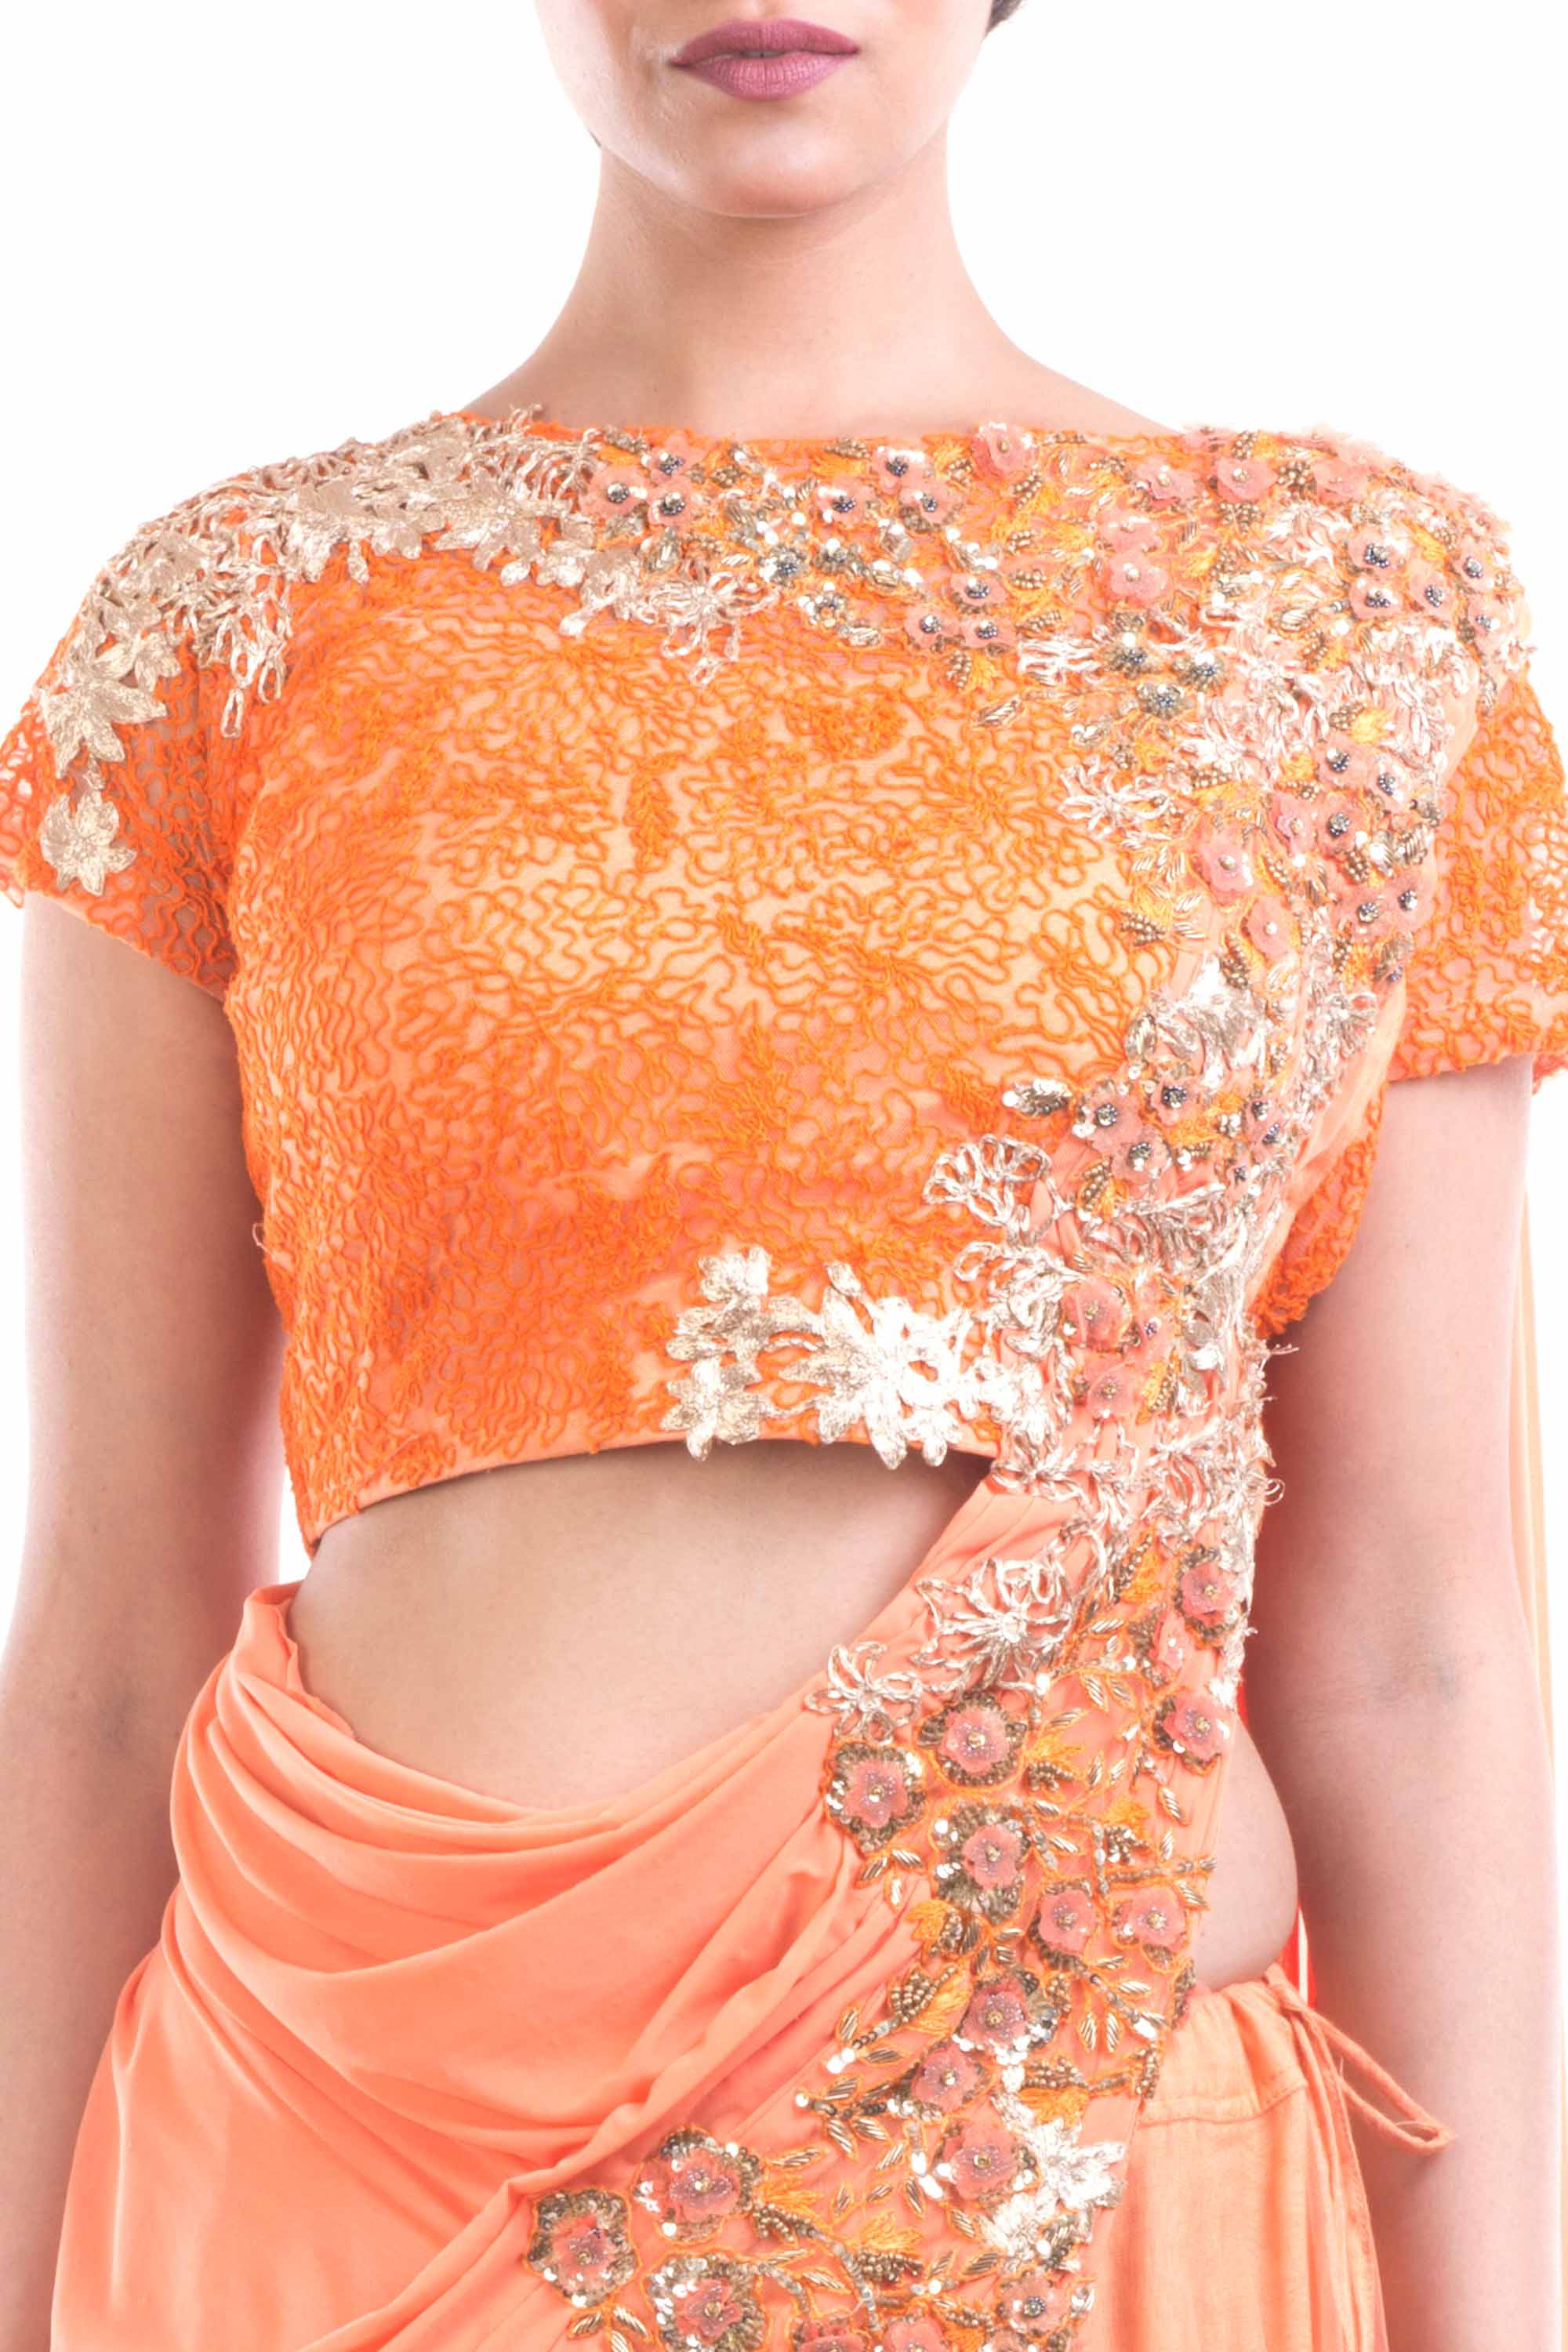 Tangerine Orange Draped Lehenga Gown Closeup